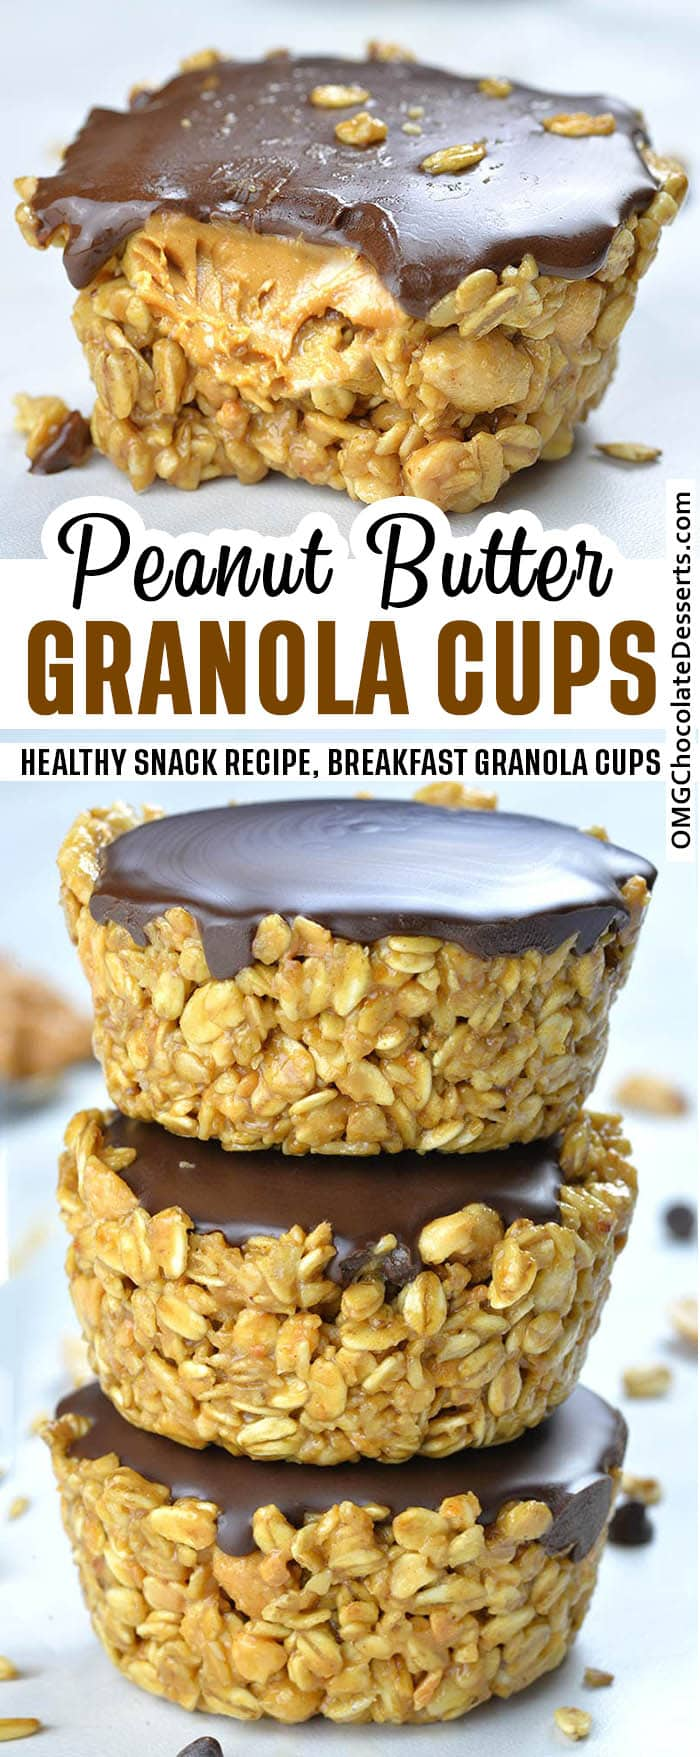 Two images of No Bake Peanut Butter Granola Cups